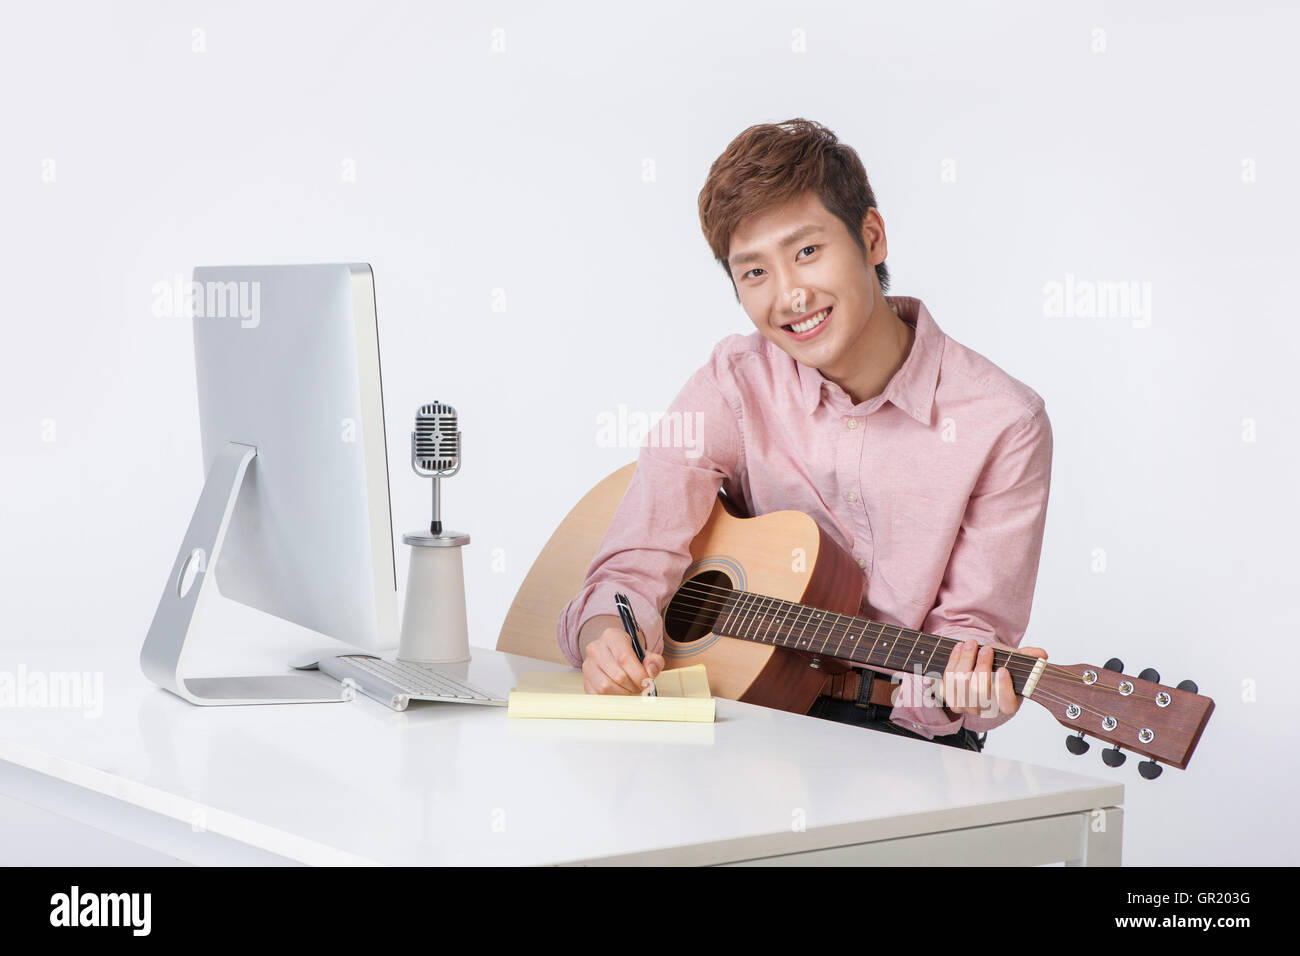 Young smiling mna playing a guitar with computer and microphone - Stock Image